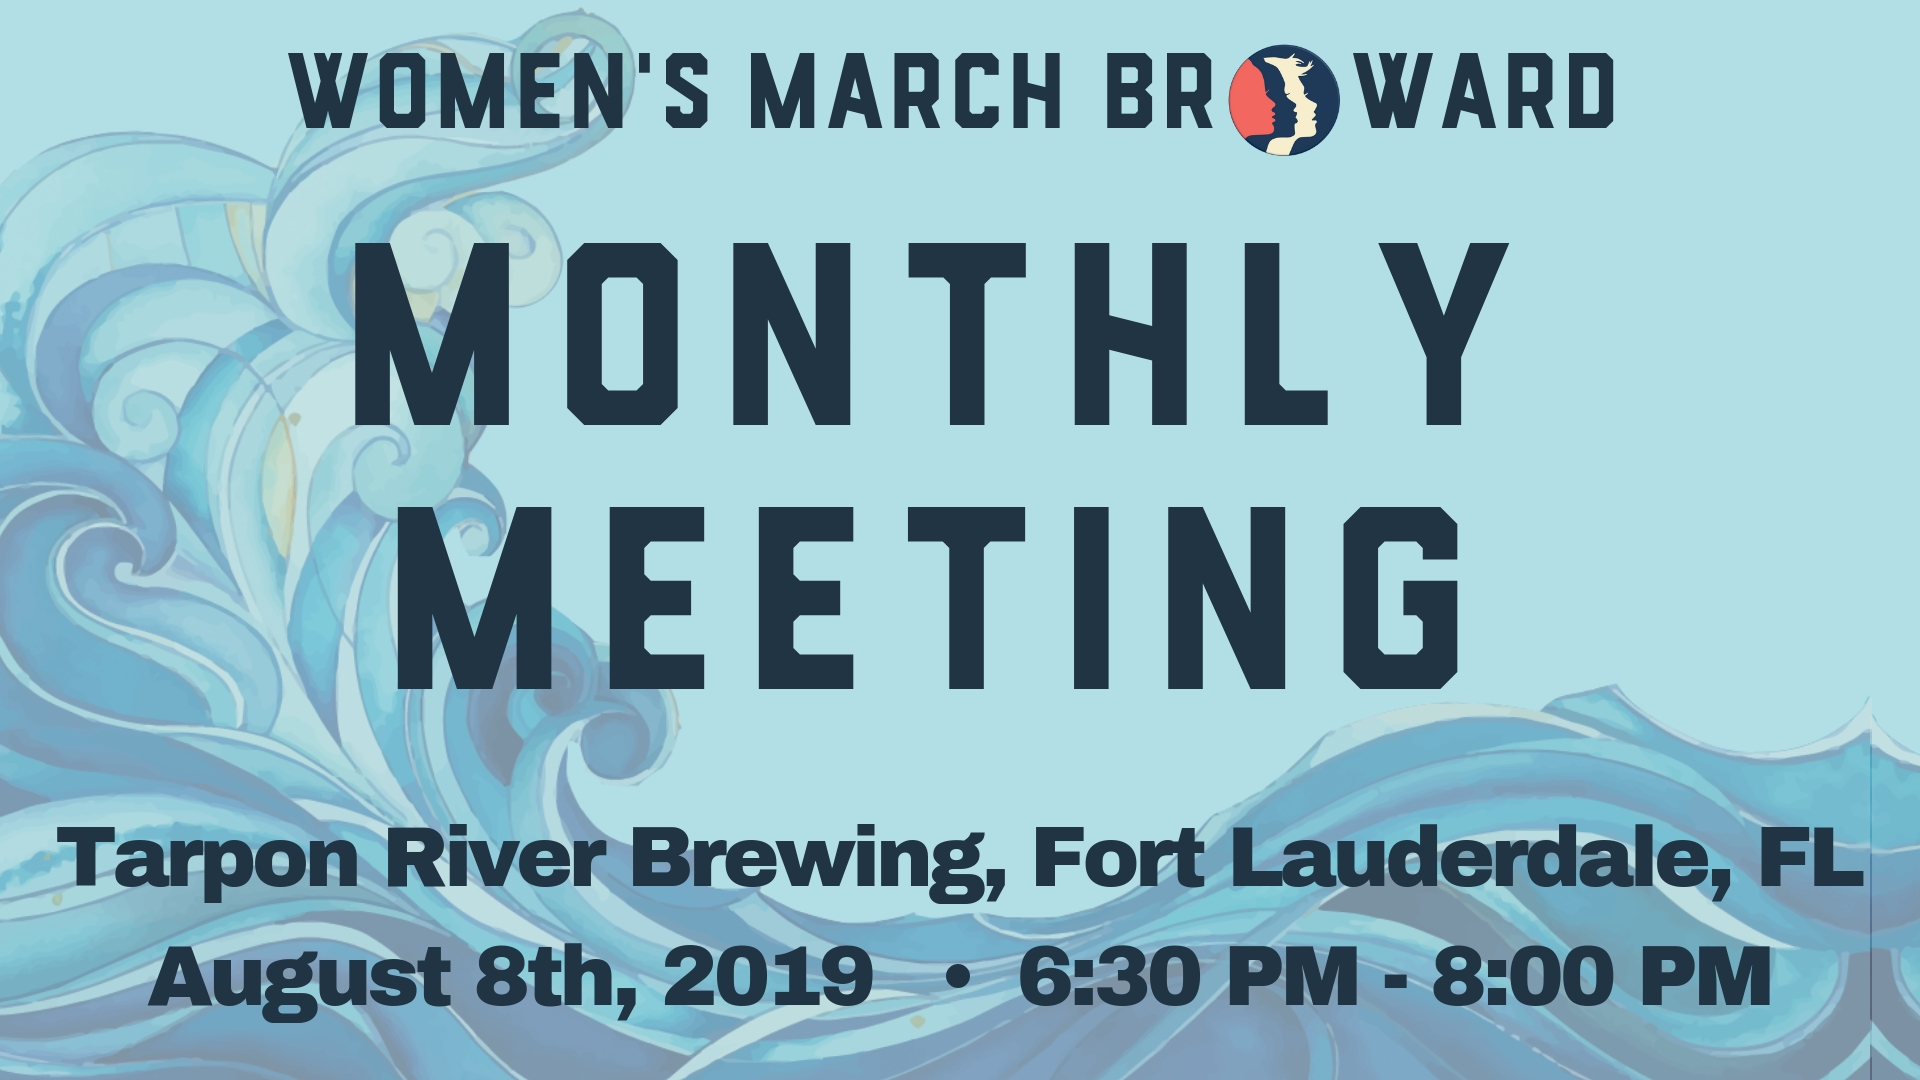 8-08-19: Monthly Meeting - Our next Monthly Meeting in August will be at a new location! We are excited to meet at Tarpon River Brewing located at 280 SW 6th Street, Fort Lauderdale, FL. Our speakers are from the amazing group, Miami Waterkeeper. The Miami Waterkeeper's mission is to defend, protect, and preserve South Florida's watershed through citizen engagement and community action rooted in sound science and research. They work to ensure swimmable, drinkable, fishable water for all. We will be discussing the effort to protect the reefs off the Florida shores.We look forward to seeing you on August 8th!